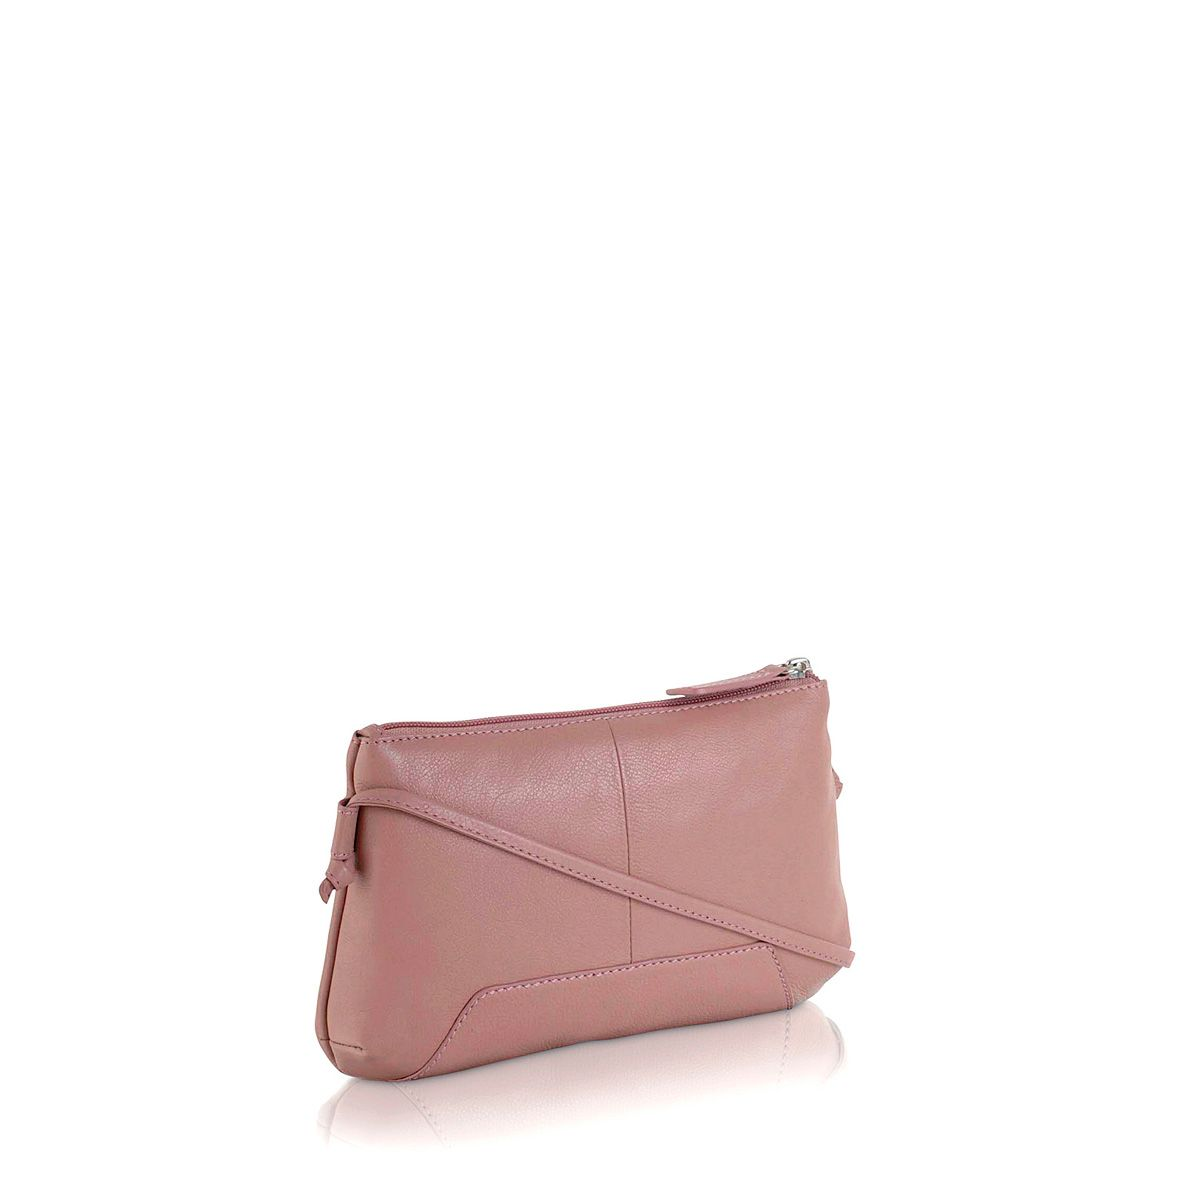 Finsbury small ziptop xbody pink leather bag